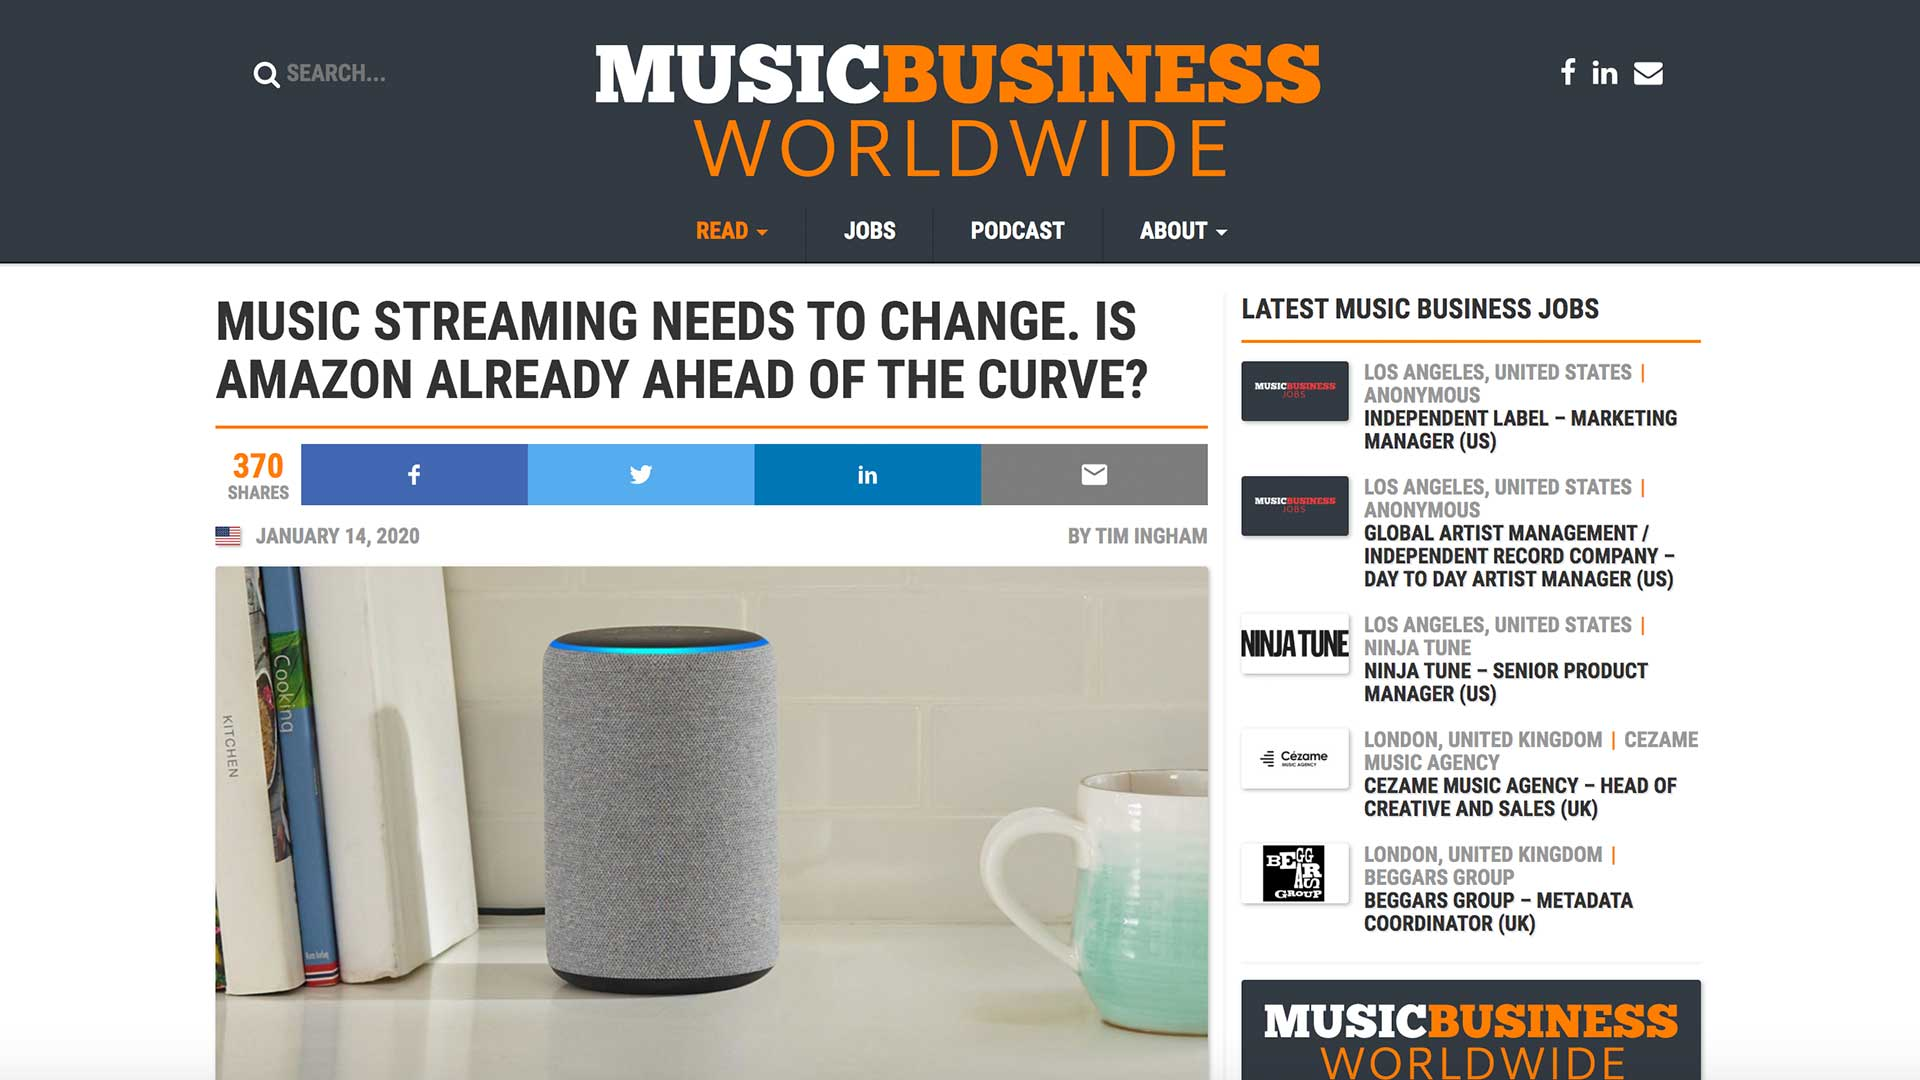 Fairness Rocks News MUSIC STREAMING NEEDS TO CHANGE. IS AMAZON ALREADY AHEAD OF THE CURVE?